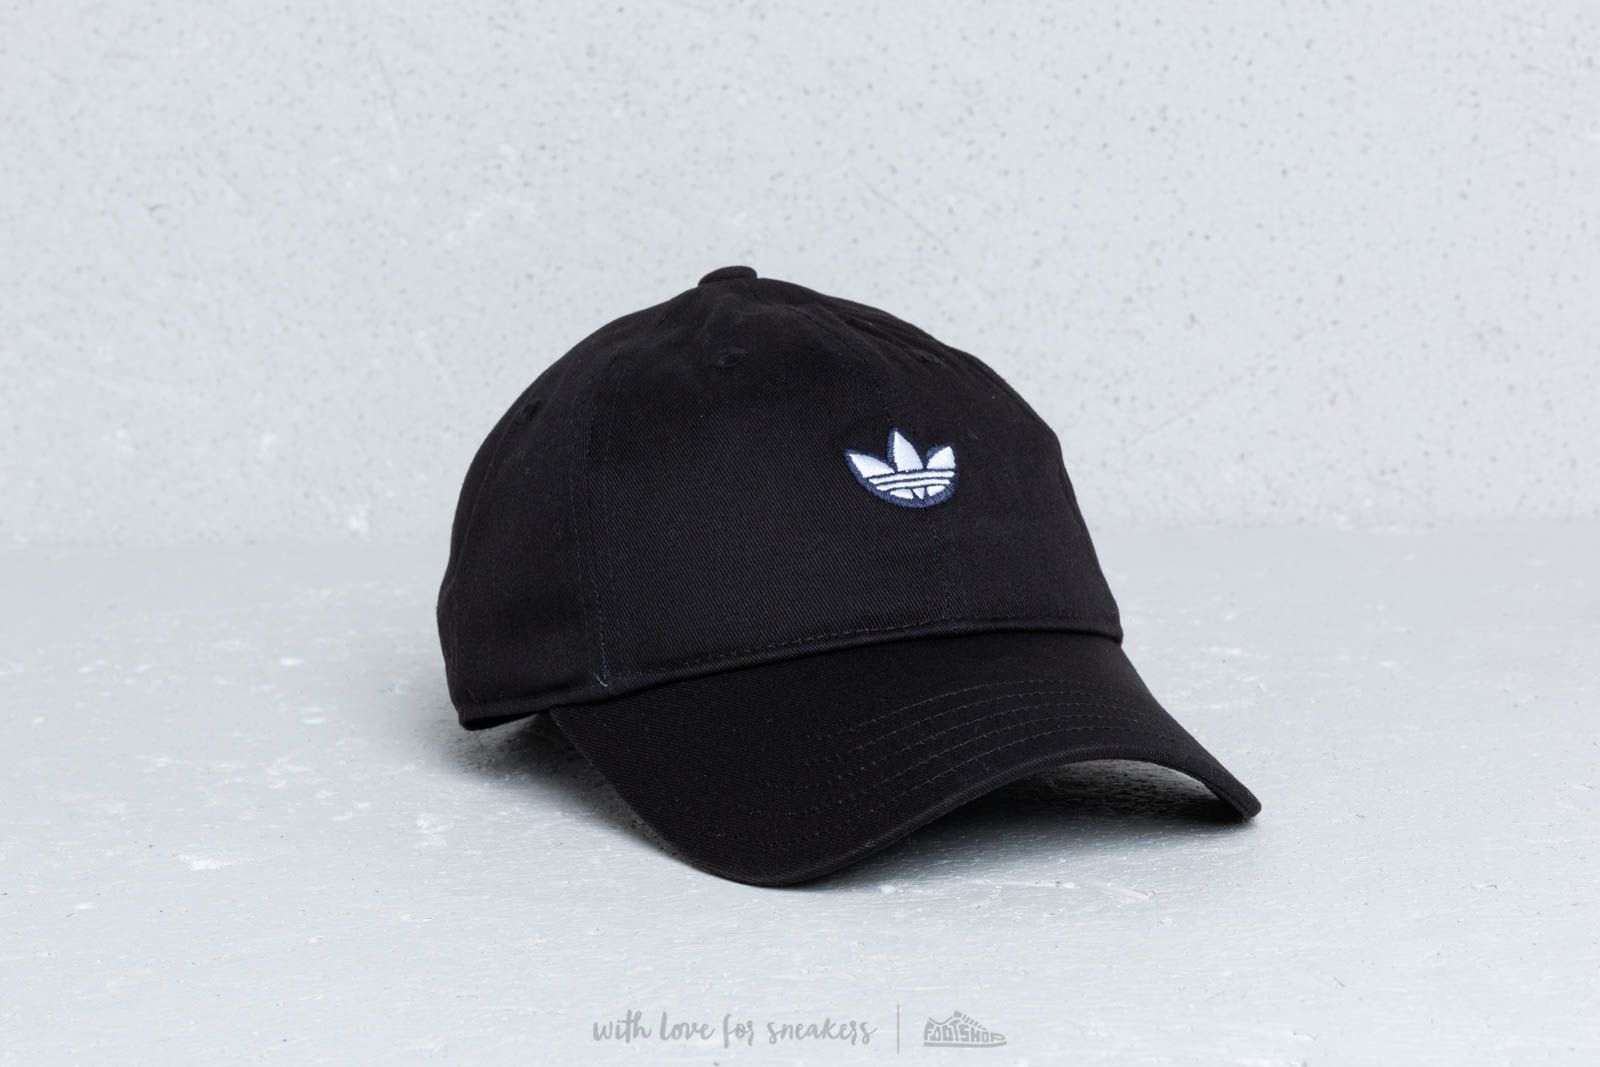 d1c1de36dec adidas Originals Samstag Dad Cap Black  White  Gold Met